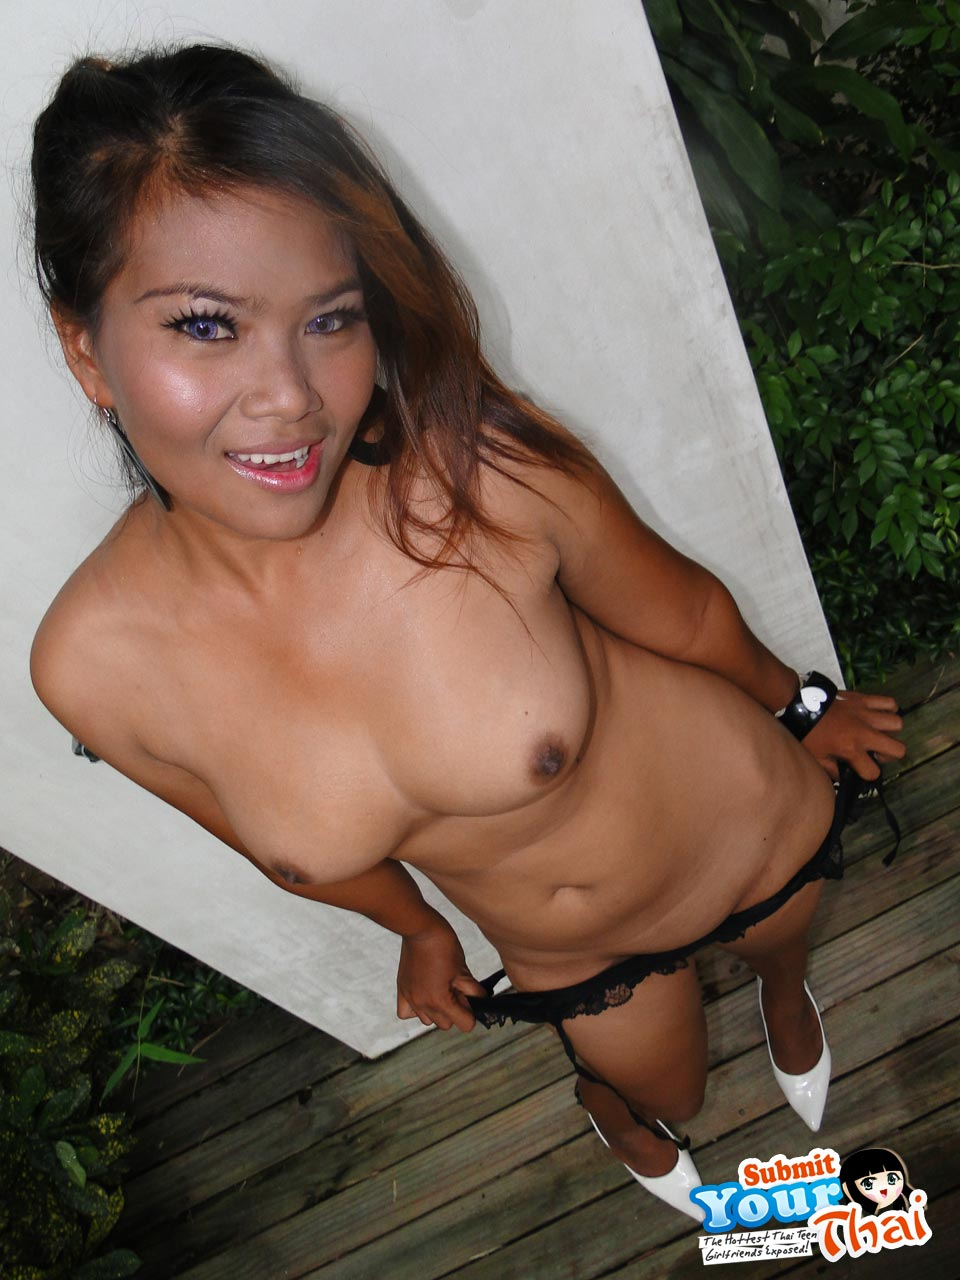 big tits your thai Submit